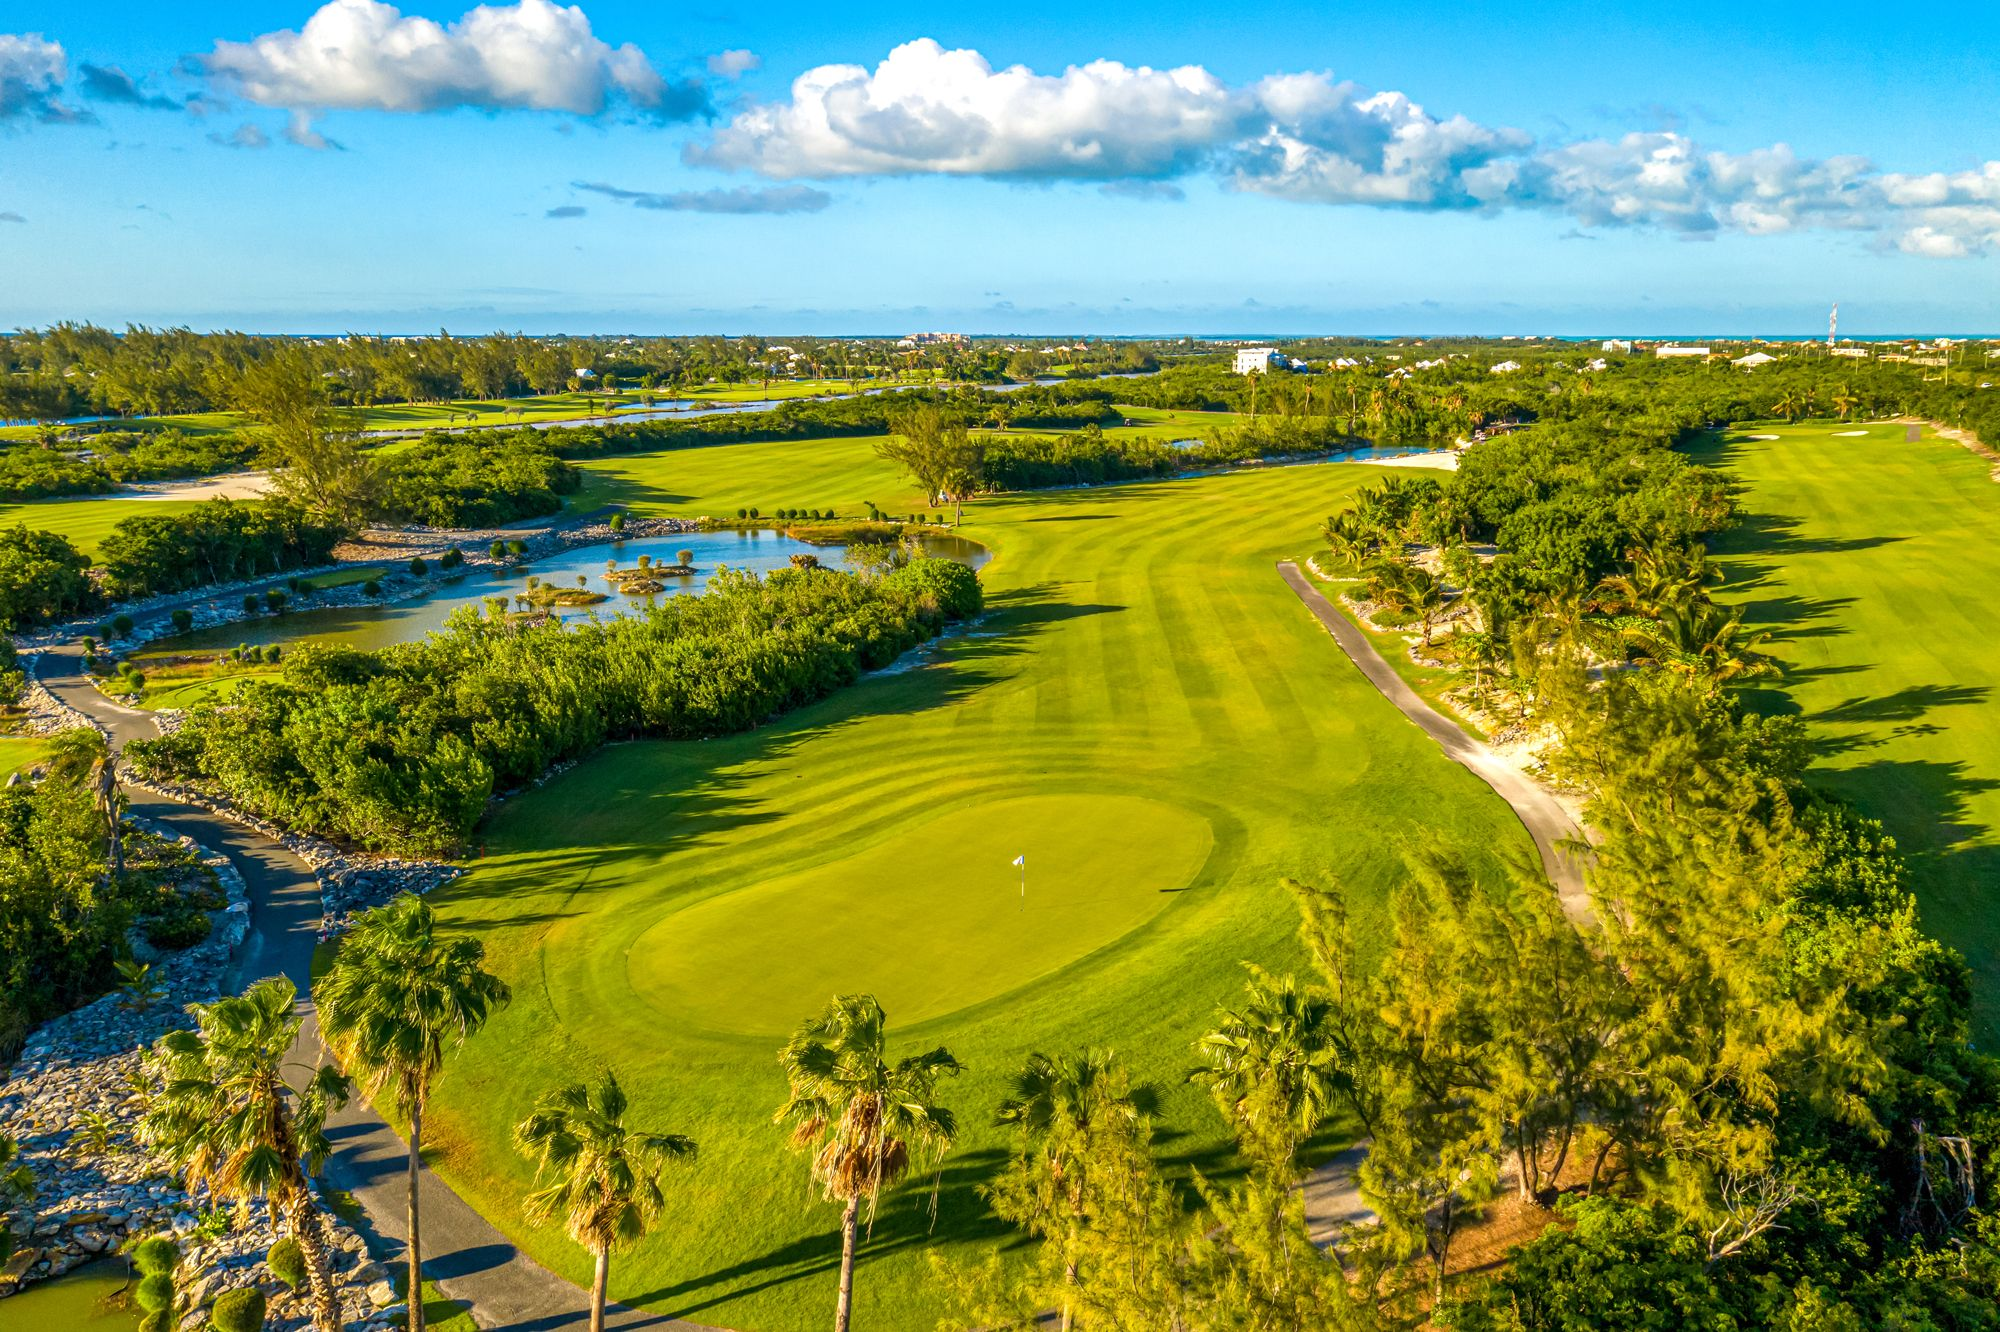 Provo Golf Club Turks Caicos